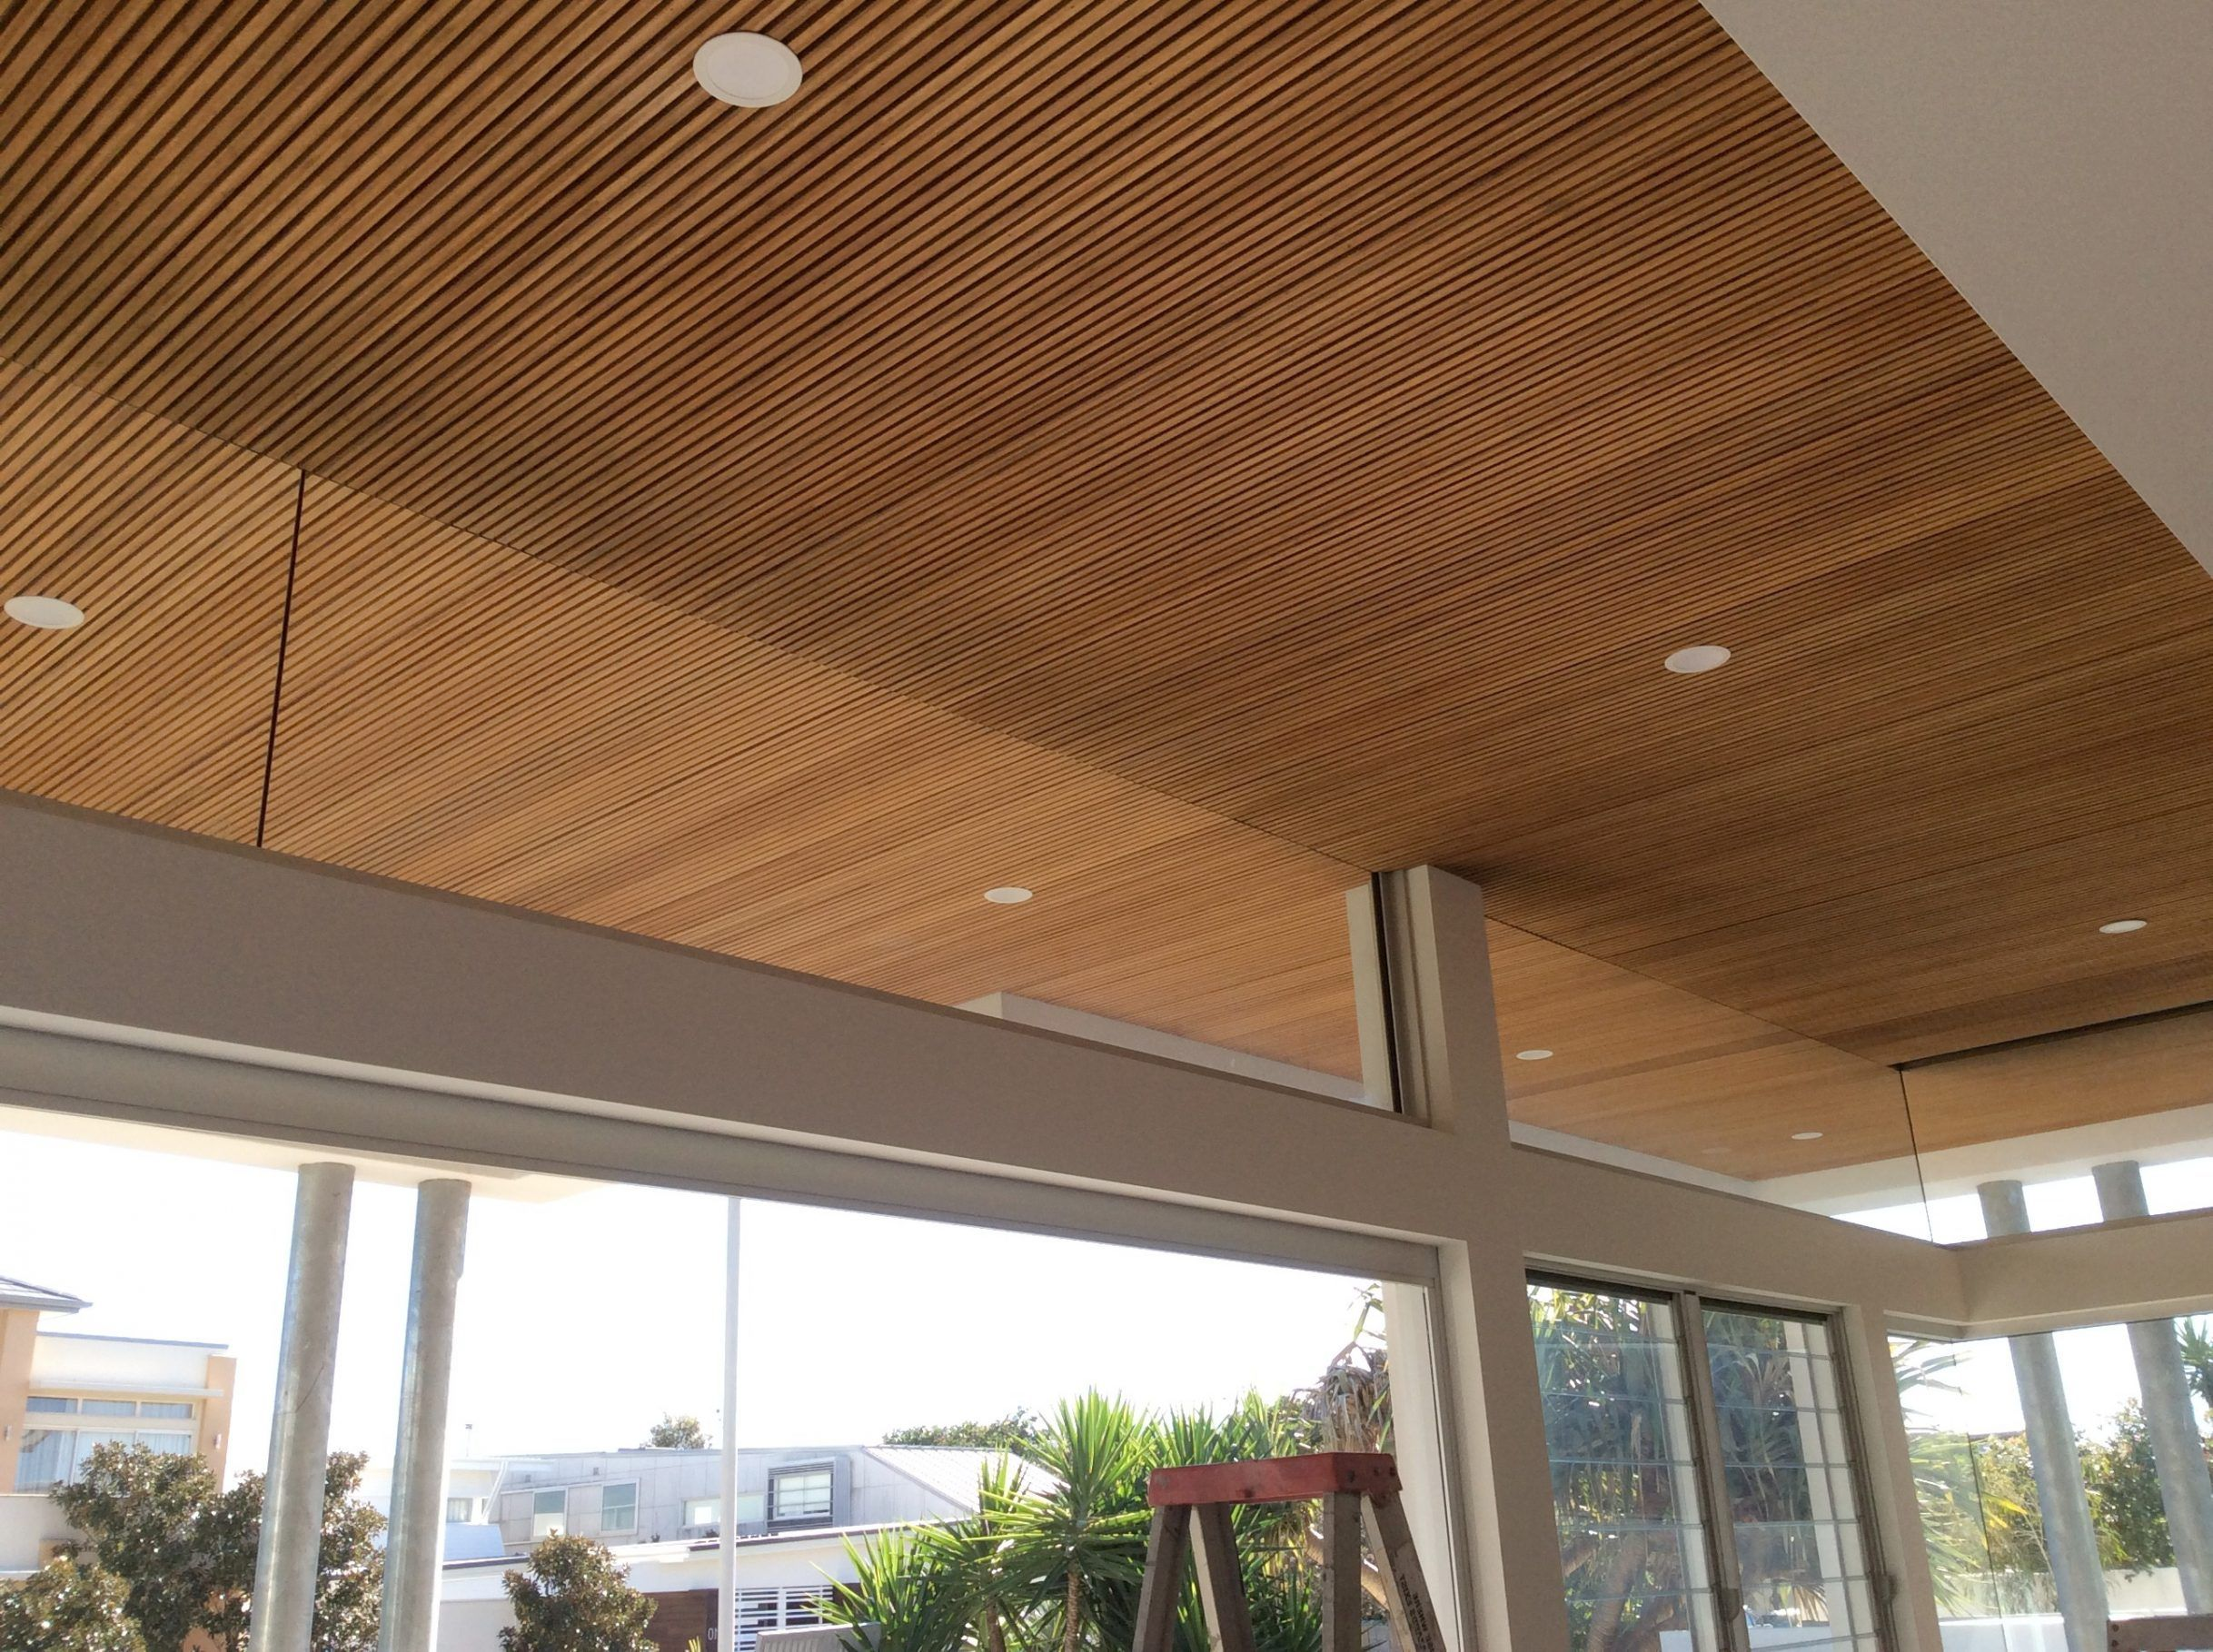 Our Bamboo Curved Cladding For Indoor Outdoor Ceilings Bamboo Ceiling Ceiling Cladding Cladding